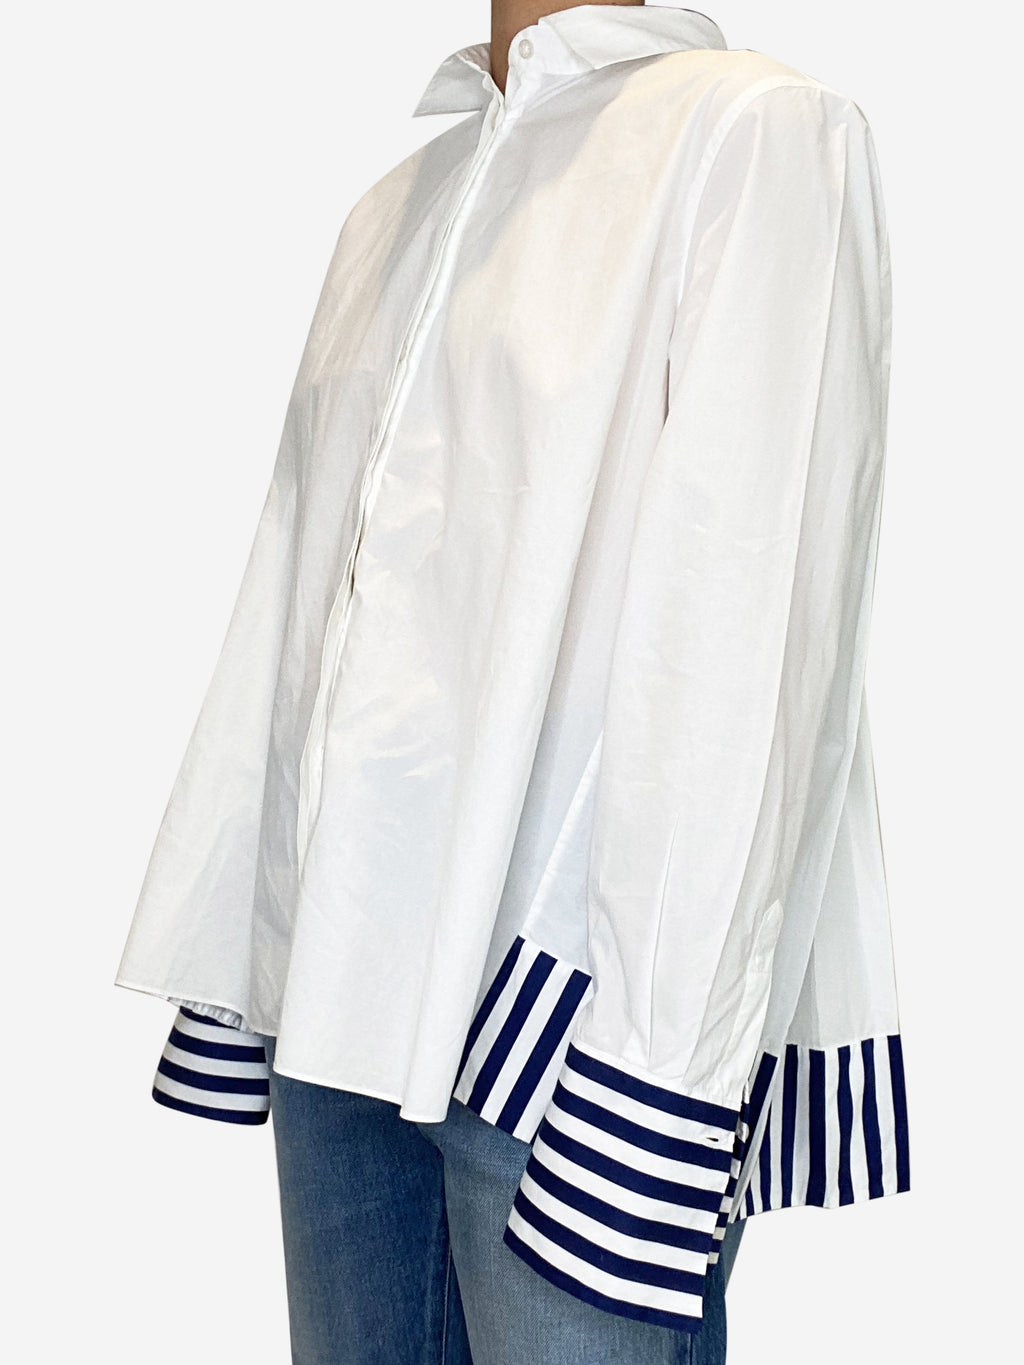 White and blue striped pleated shirt - size M